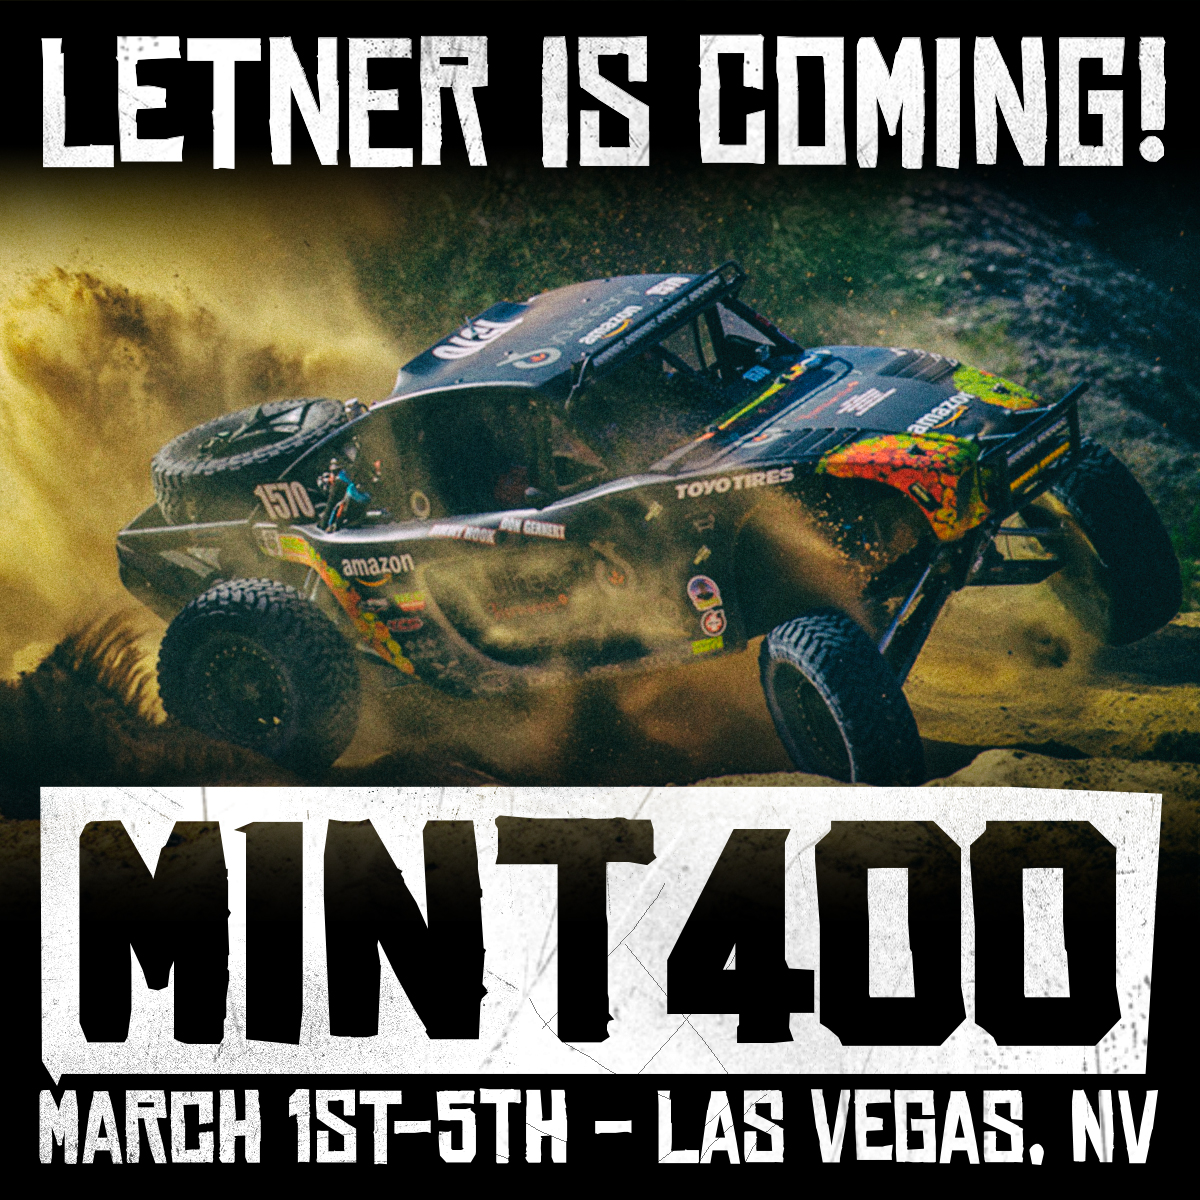 2017_mint_400_Letner_is_coming.jpg